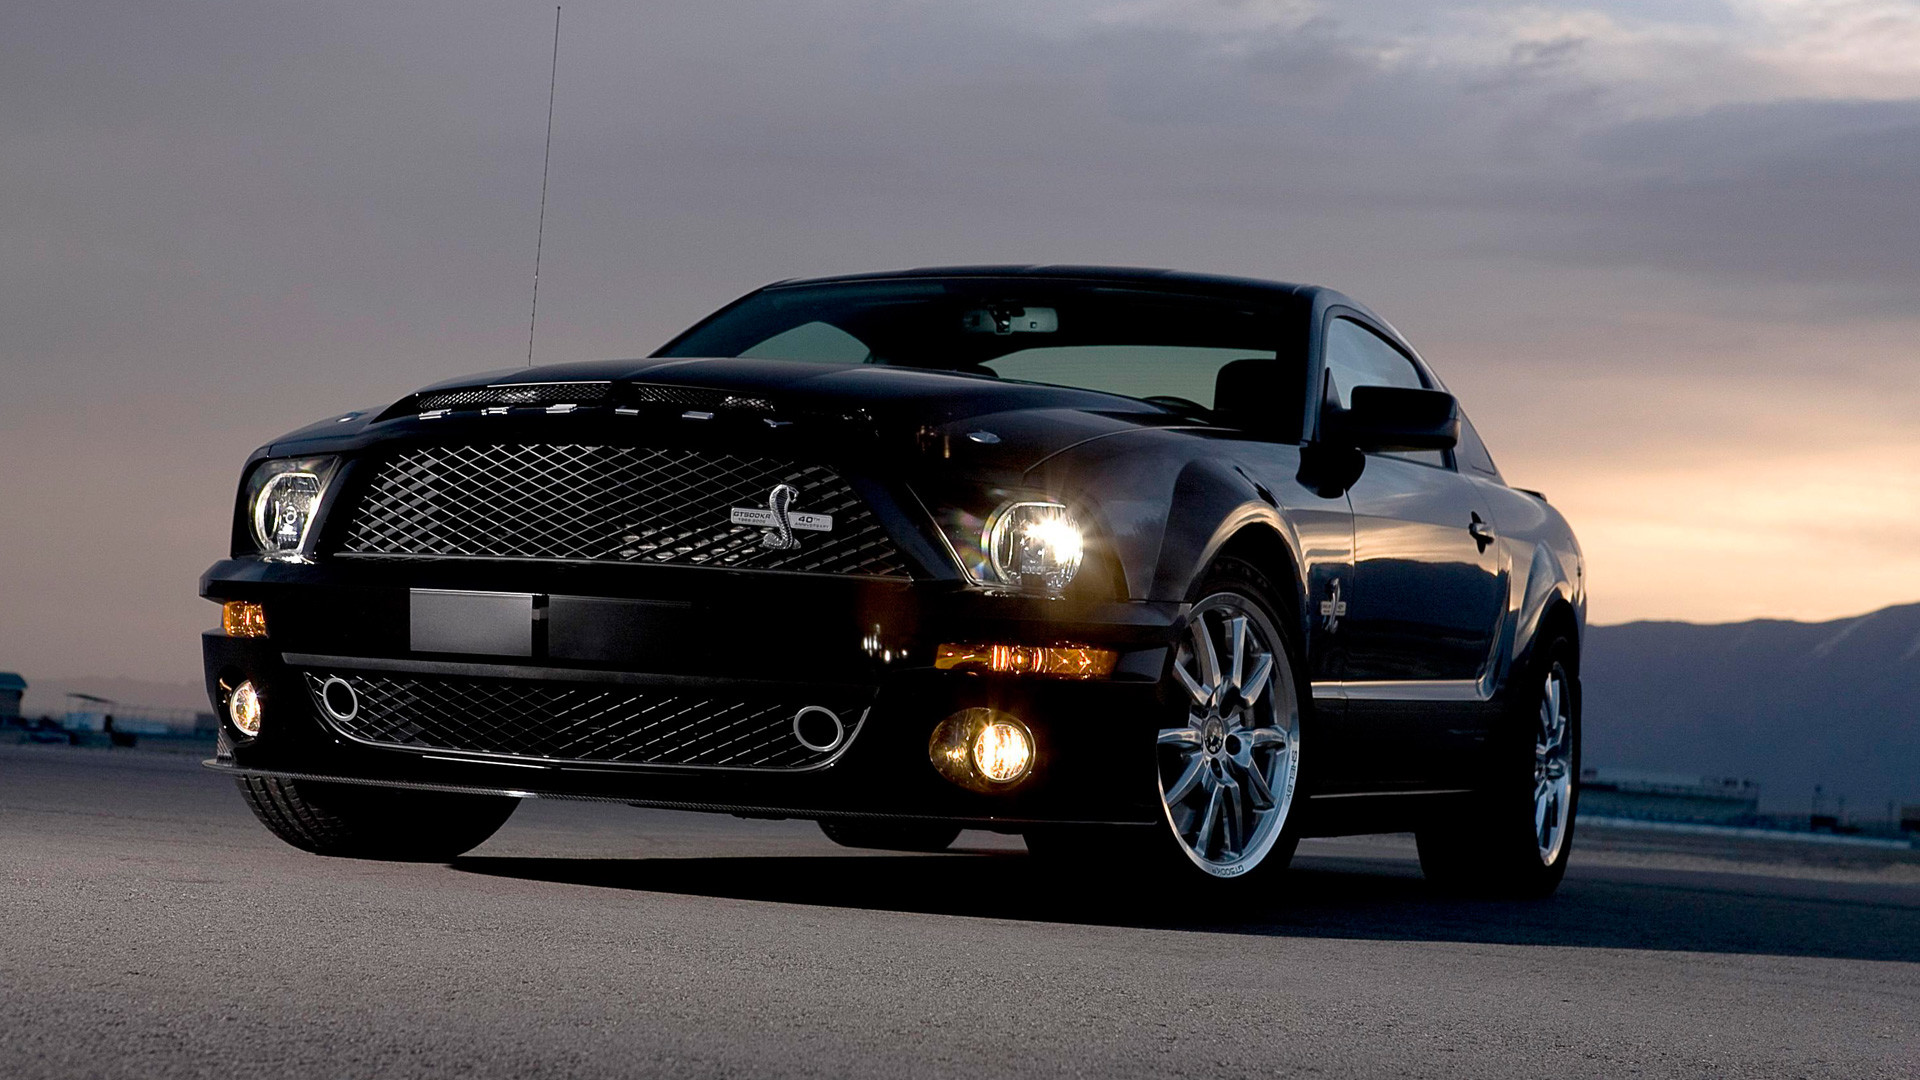 2011 ford mustang shelby gt500 super snake vs 427 cobra shootout